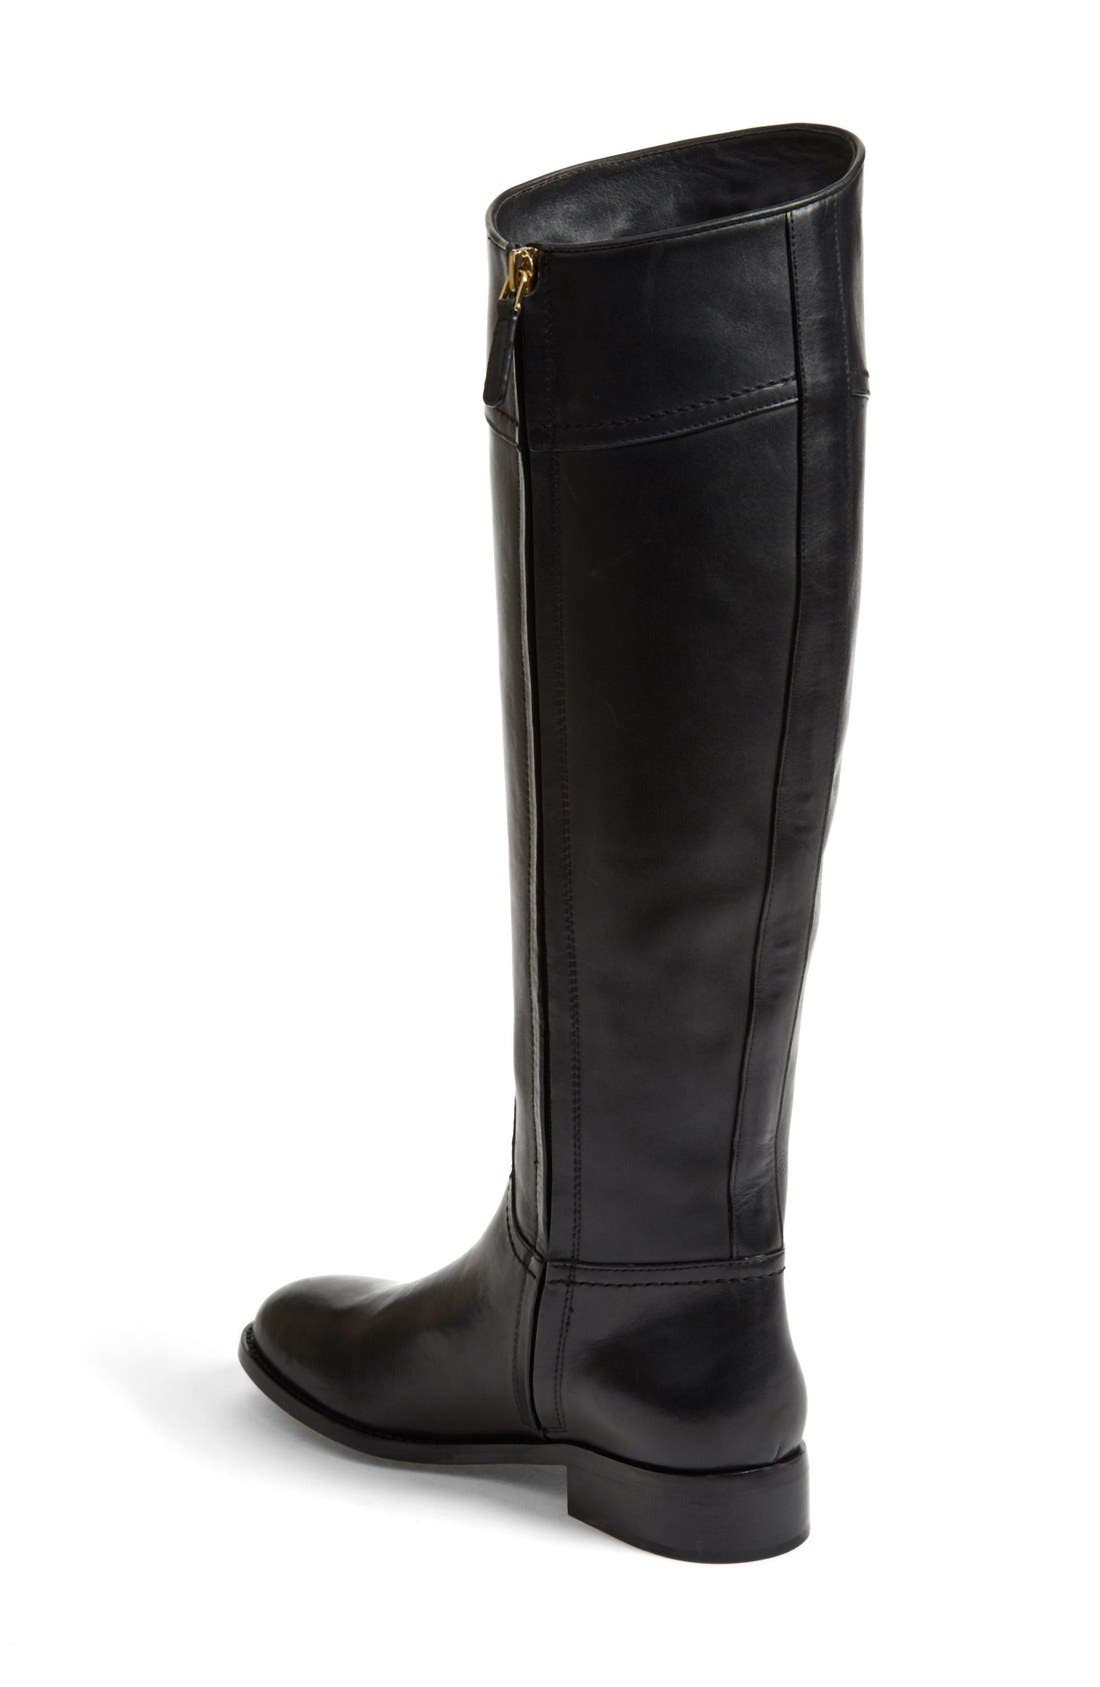 Alternate Image 2  - Tory Burch 'Ashlynn' Riding Boot (Women) (Nordstrom Exclusive)